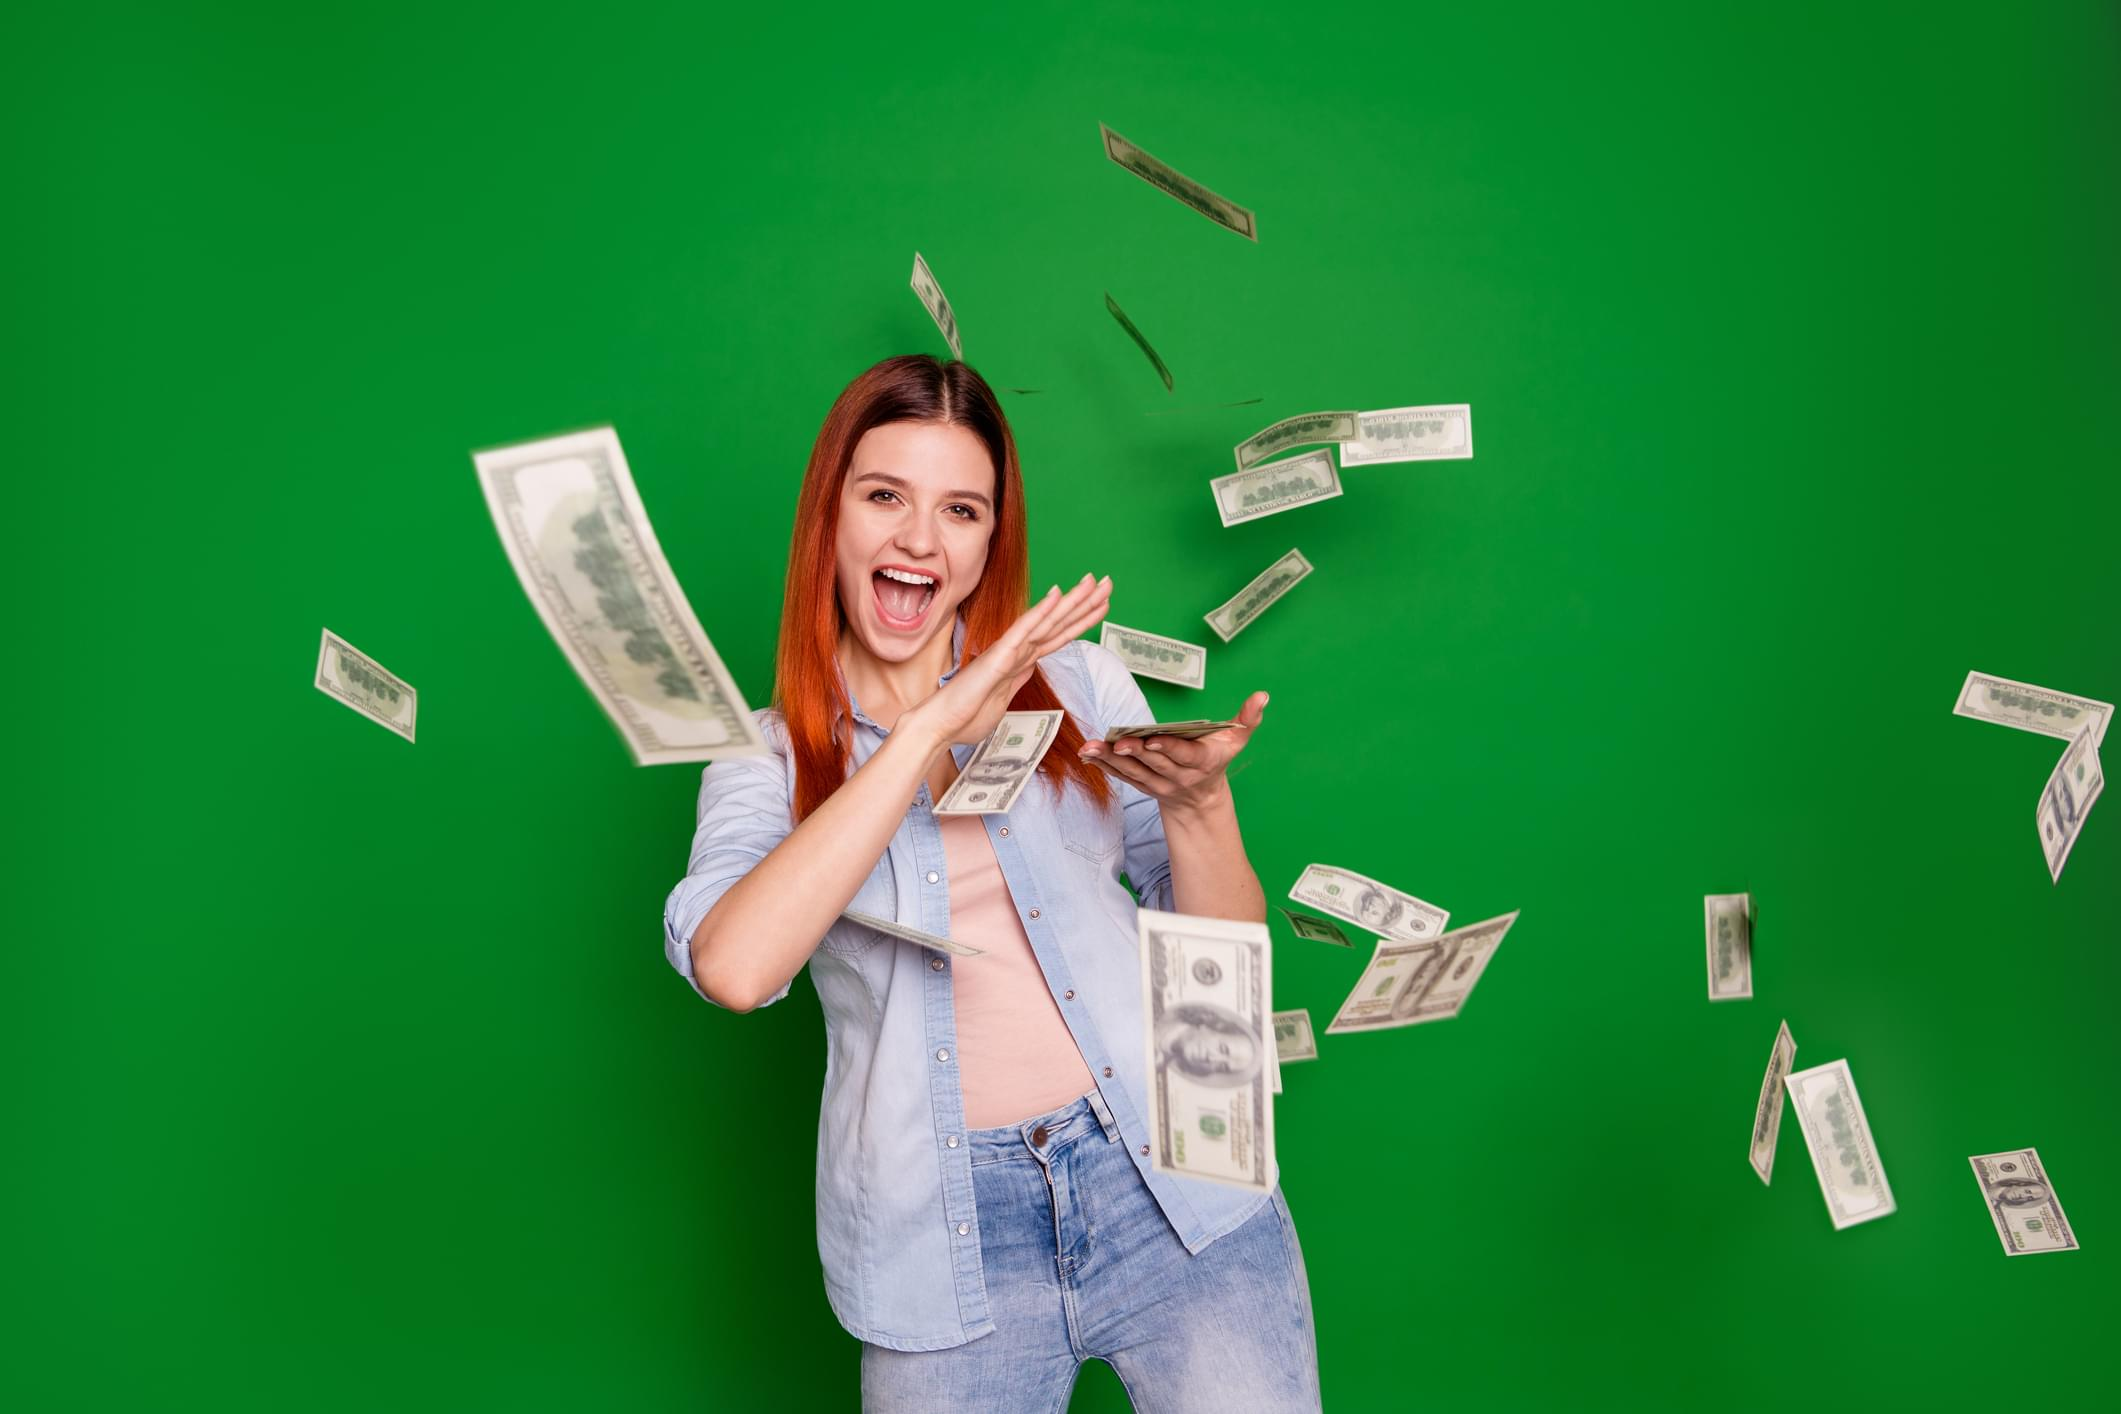 Portrait delighted ecstatic lady hold hand get salary wages rich aim positive cheerful satisfied content beautiful trendy stylish wear jeans long straight hairstyle isolated on green background